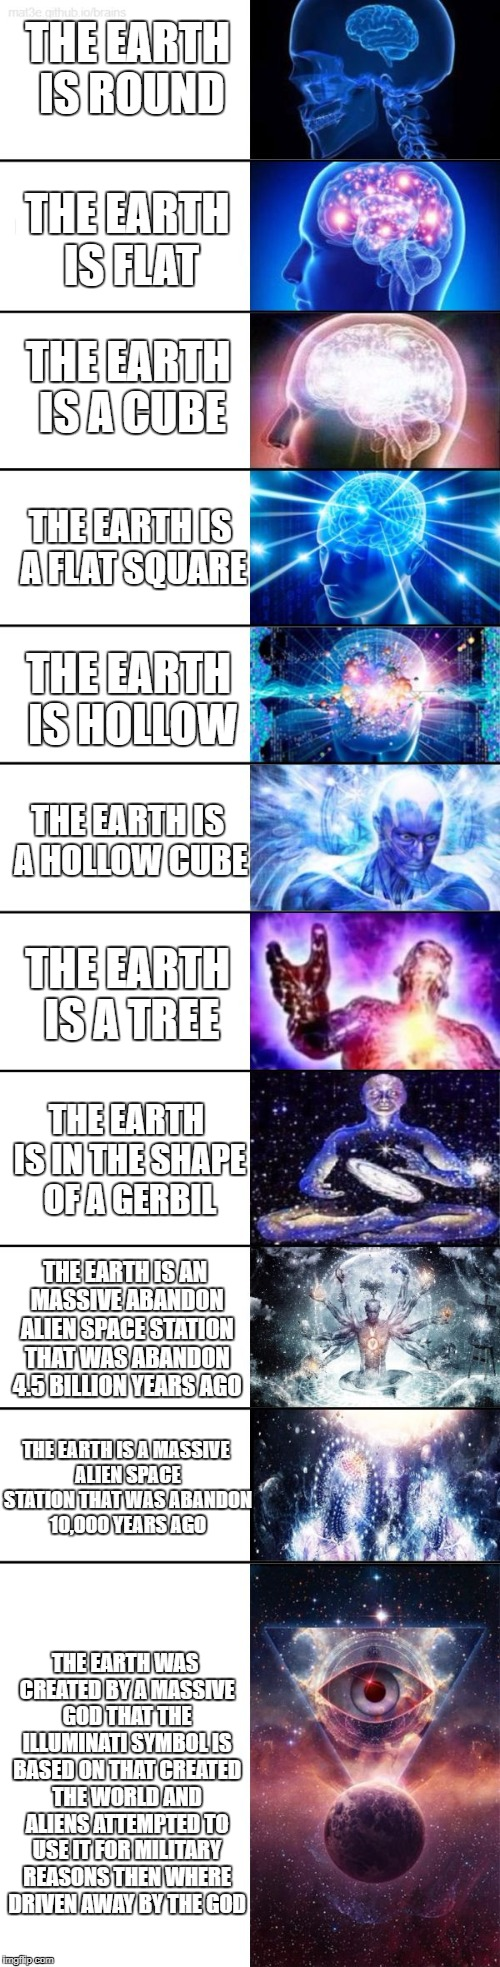 Extended Expanding Brain |  THE EARTH IS ROUND; THE EARTH IS FLAT; THE EARTH IS A CUBE; THE EARTH IS A FLAT SQUARE; THE EARTH IS HOLLOW; THE EARTH IS A HOLLOW CUBE; THE EARTH IS A TREE; THE EARTH IS IN THE SHAPE OF A GERBIL; THE EARTH IS AN MASSIVE ABANDON ALIEN SPACE STATION THAT WAS ABANDON 4.5 BILLION YEARS AGO; THE EARTH IS A MASSIVE ALIEN SPACE STATION THAT WAS ABANDON 10,000 YEARS AGO; THE EARTH WAS CREATED BY A MASSIVE GOD THAT THE ILLUMINATI SYMBOL IS BASED ON THAT CREATED THE WORLD AND ALIENS ATTEMPTED TO USE IT FOR MILITARY REASONS THEN WHERE DRIVEN AWAY BY THE GOD | image tagged in extended expanding brain | made w/ Imgflip meme maker